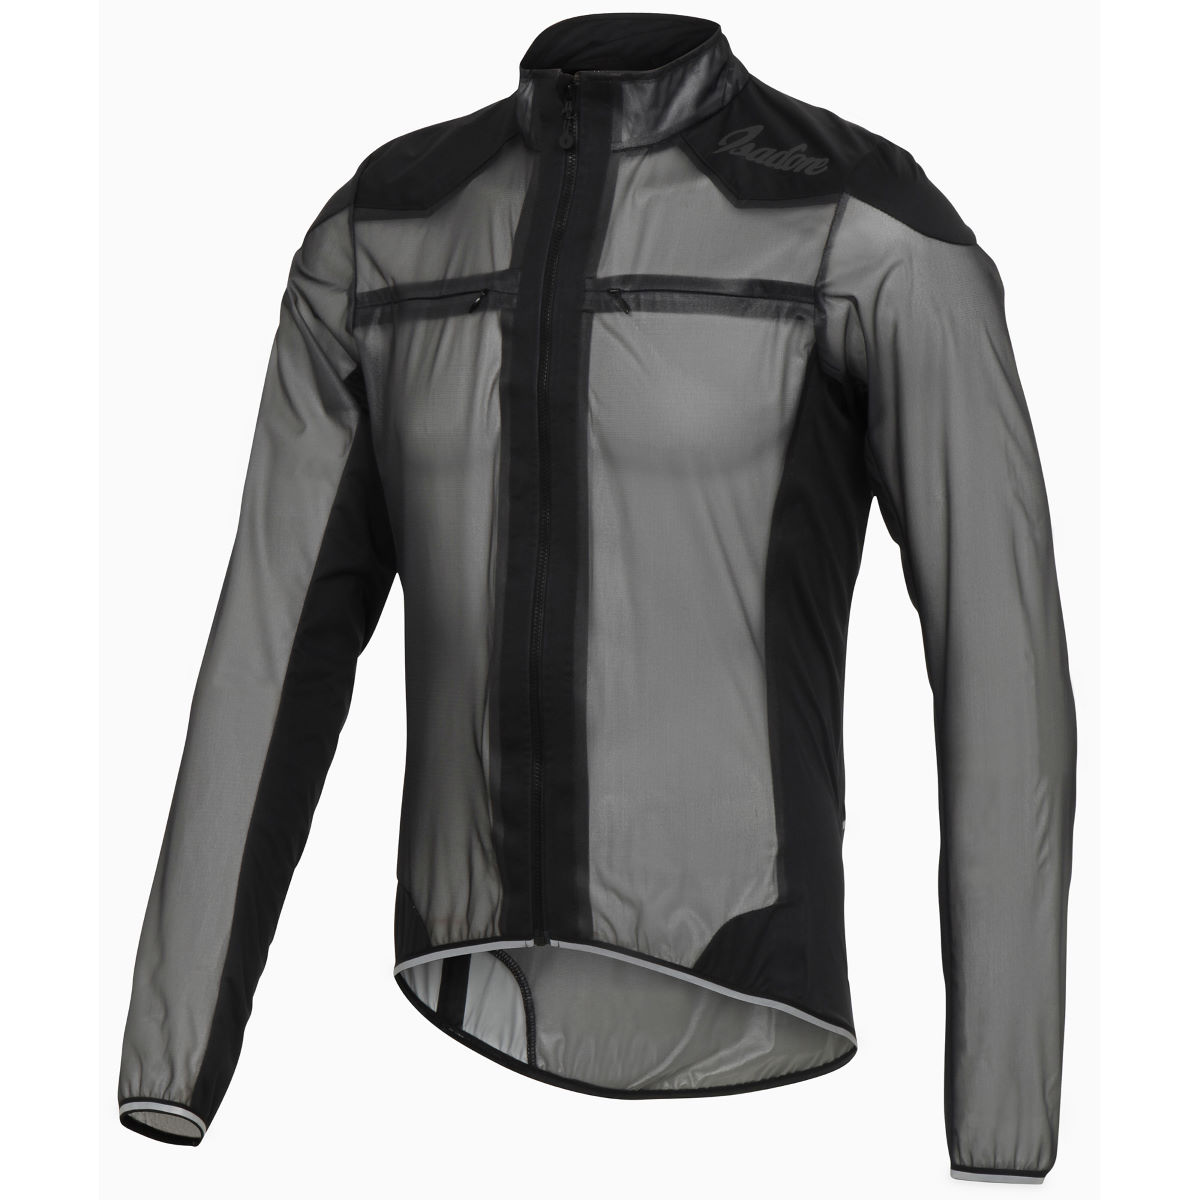 Isadore Isadore The Essential Jacket   Jackets